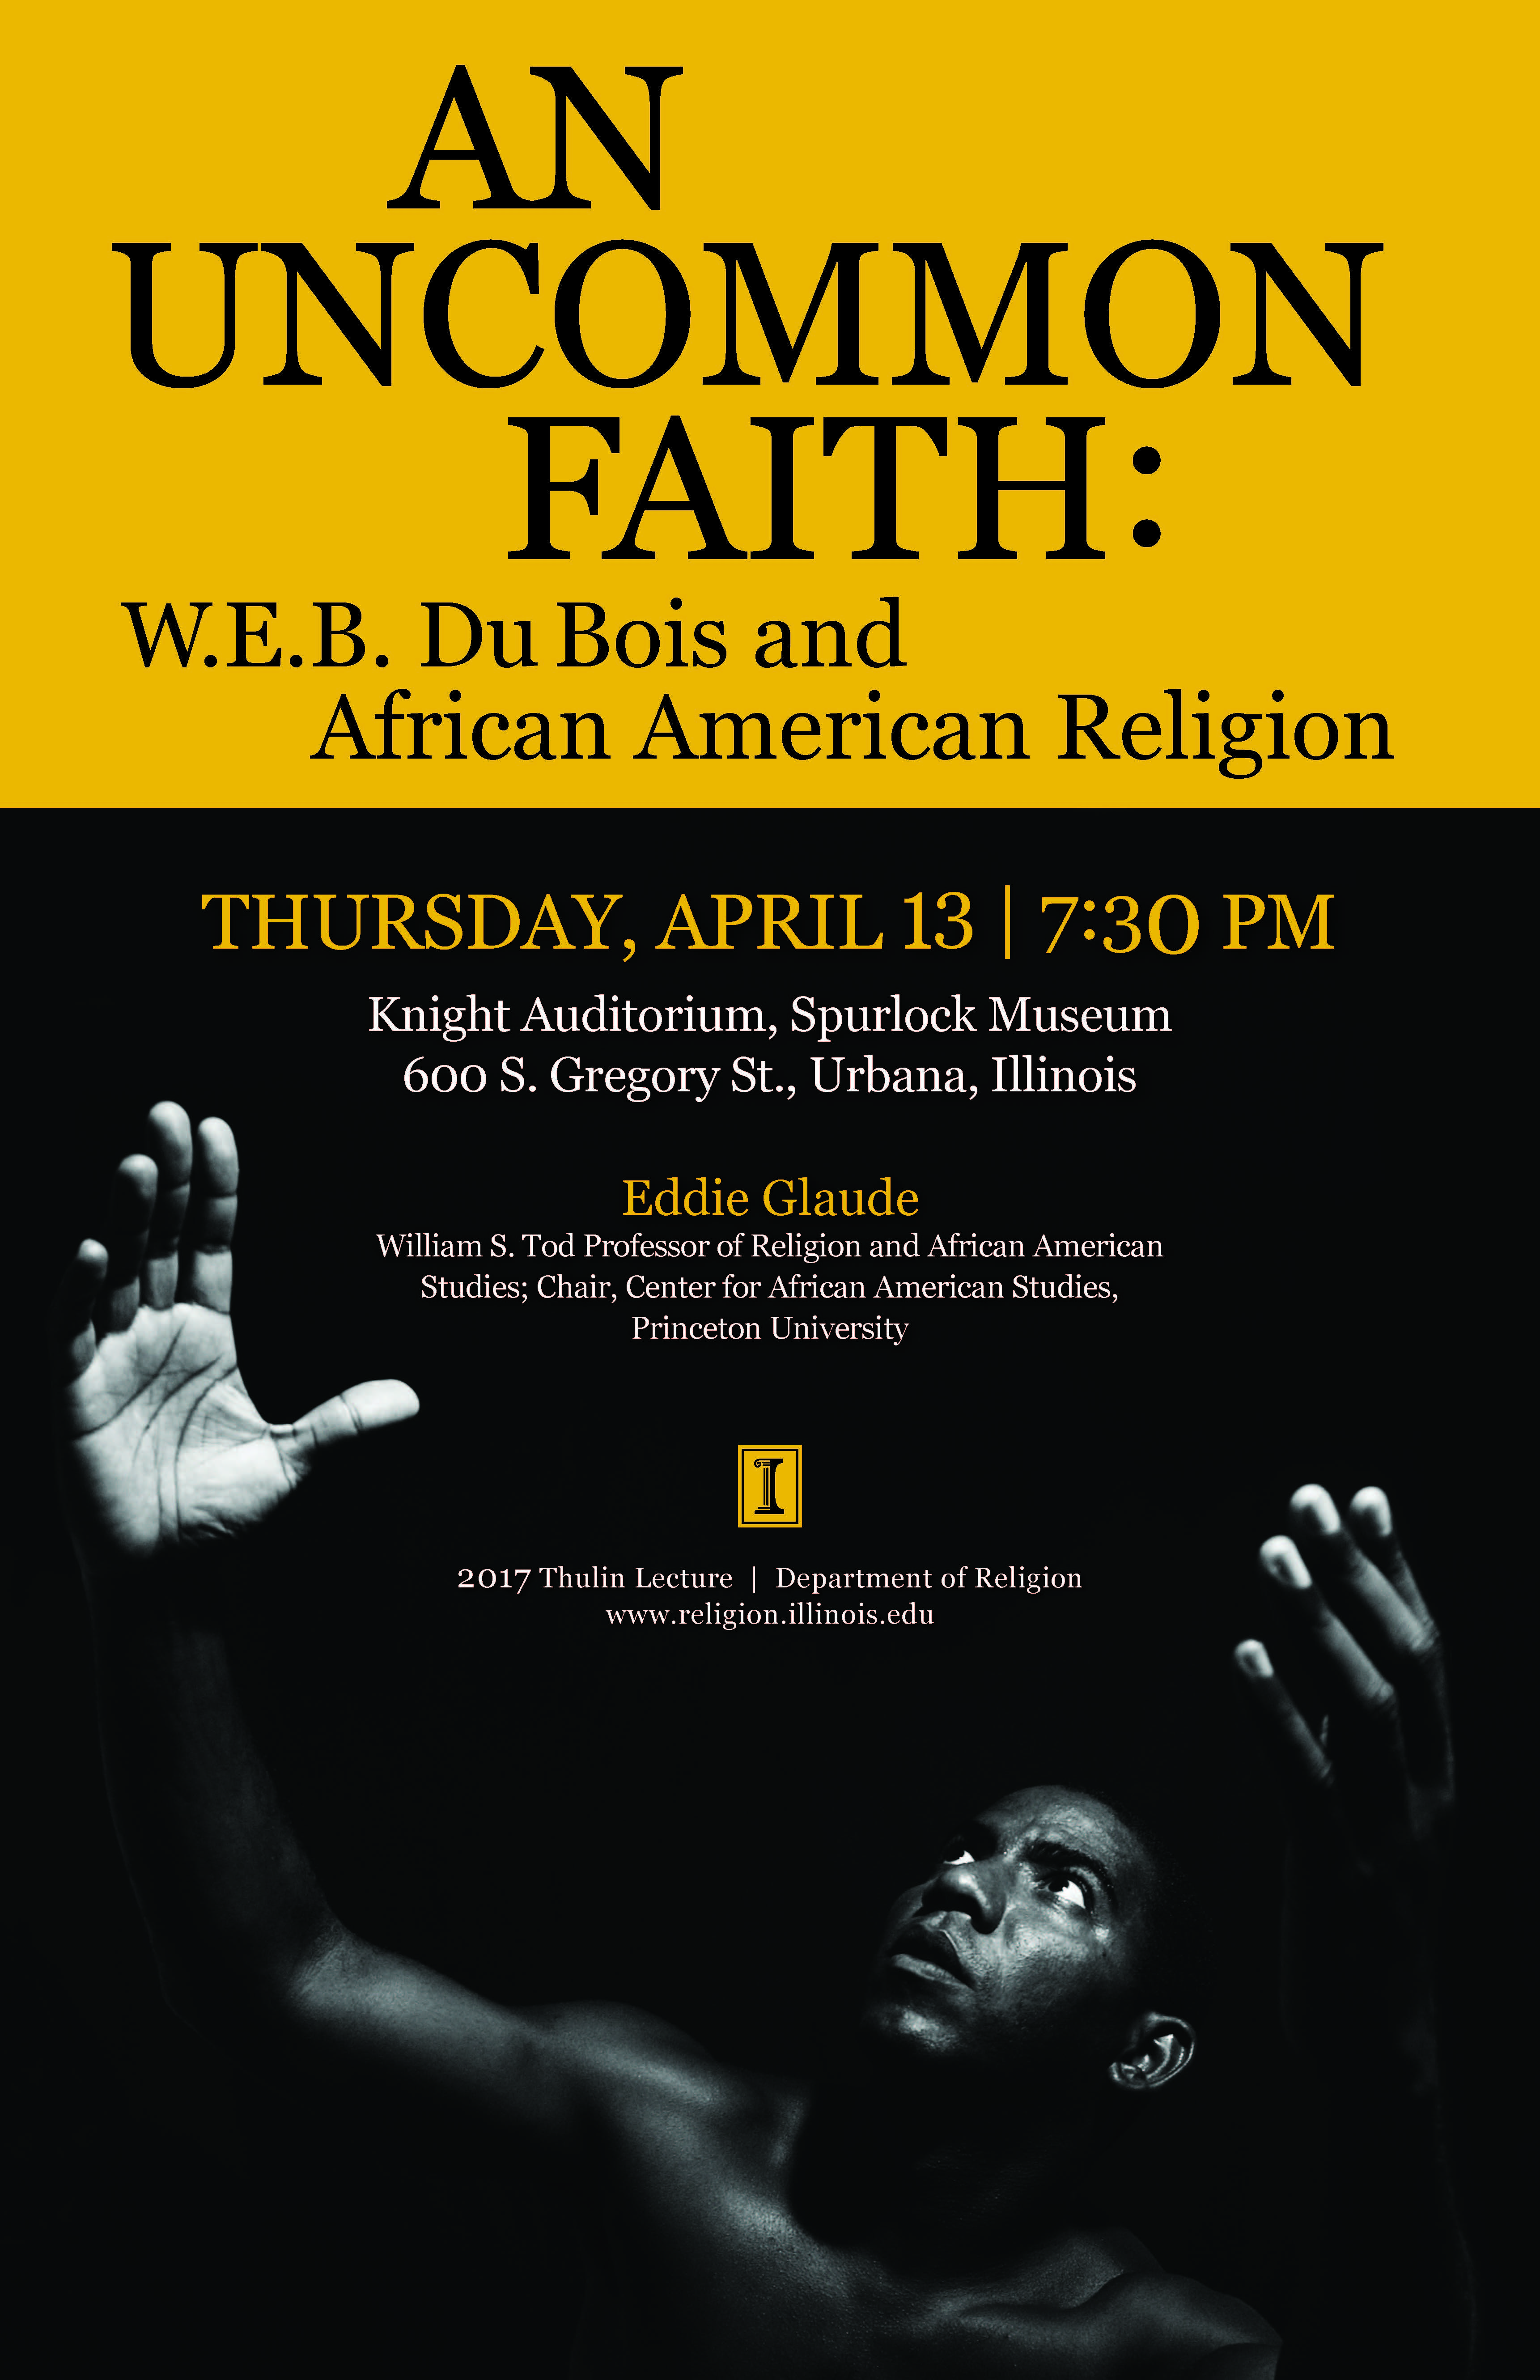 An Uncommon Faith: W.E.B. Du Bois and African American Religion